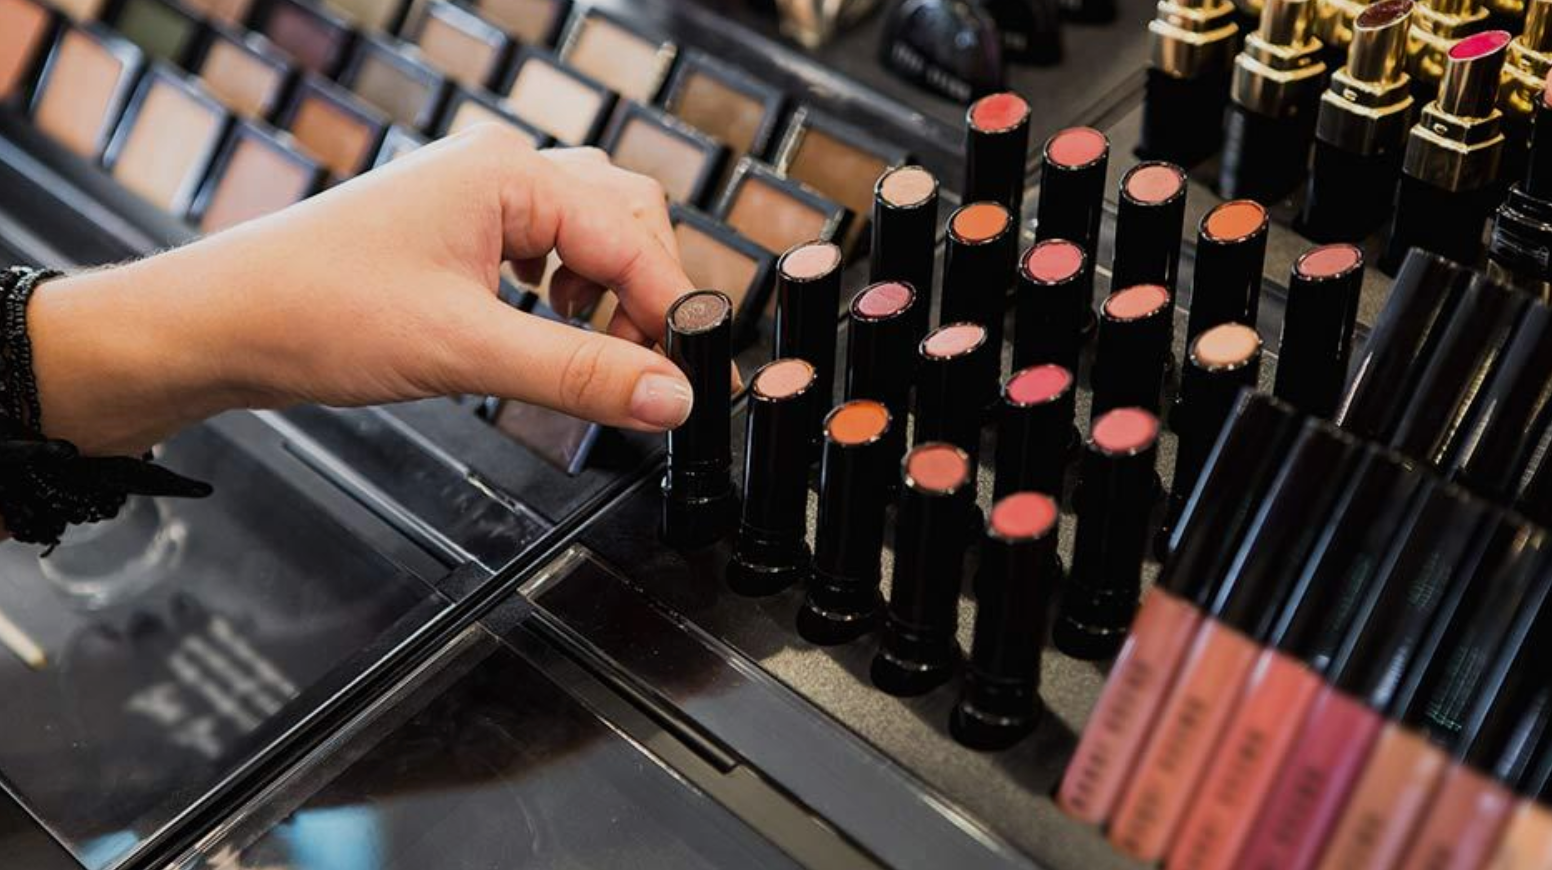 This Is How Much Bacteria The Average Makeup Tester Has